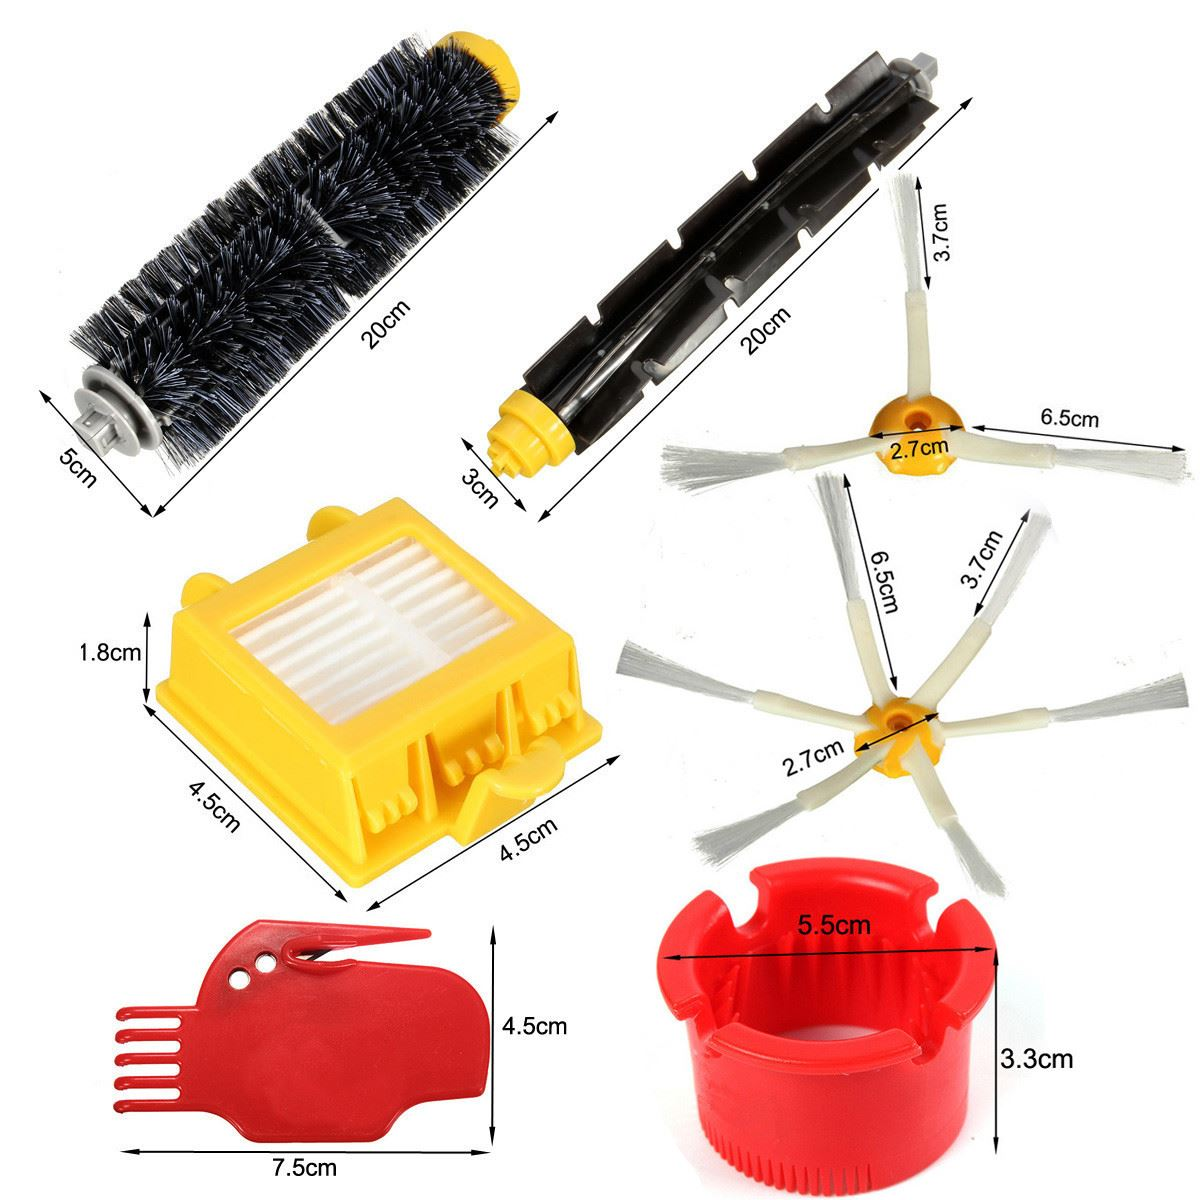 2018 New 16Pcs Hepa Filters And Flexible Beater Bristle Brush Kit 2 Side Brush For i Robot R oomba 700 Series Cleaning Tools high quality filters brush pack kit for 700 series new arrival